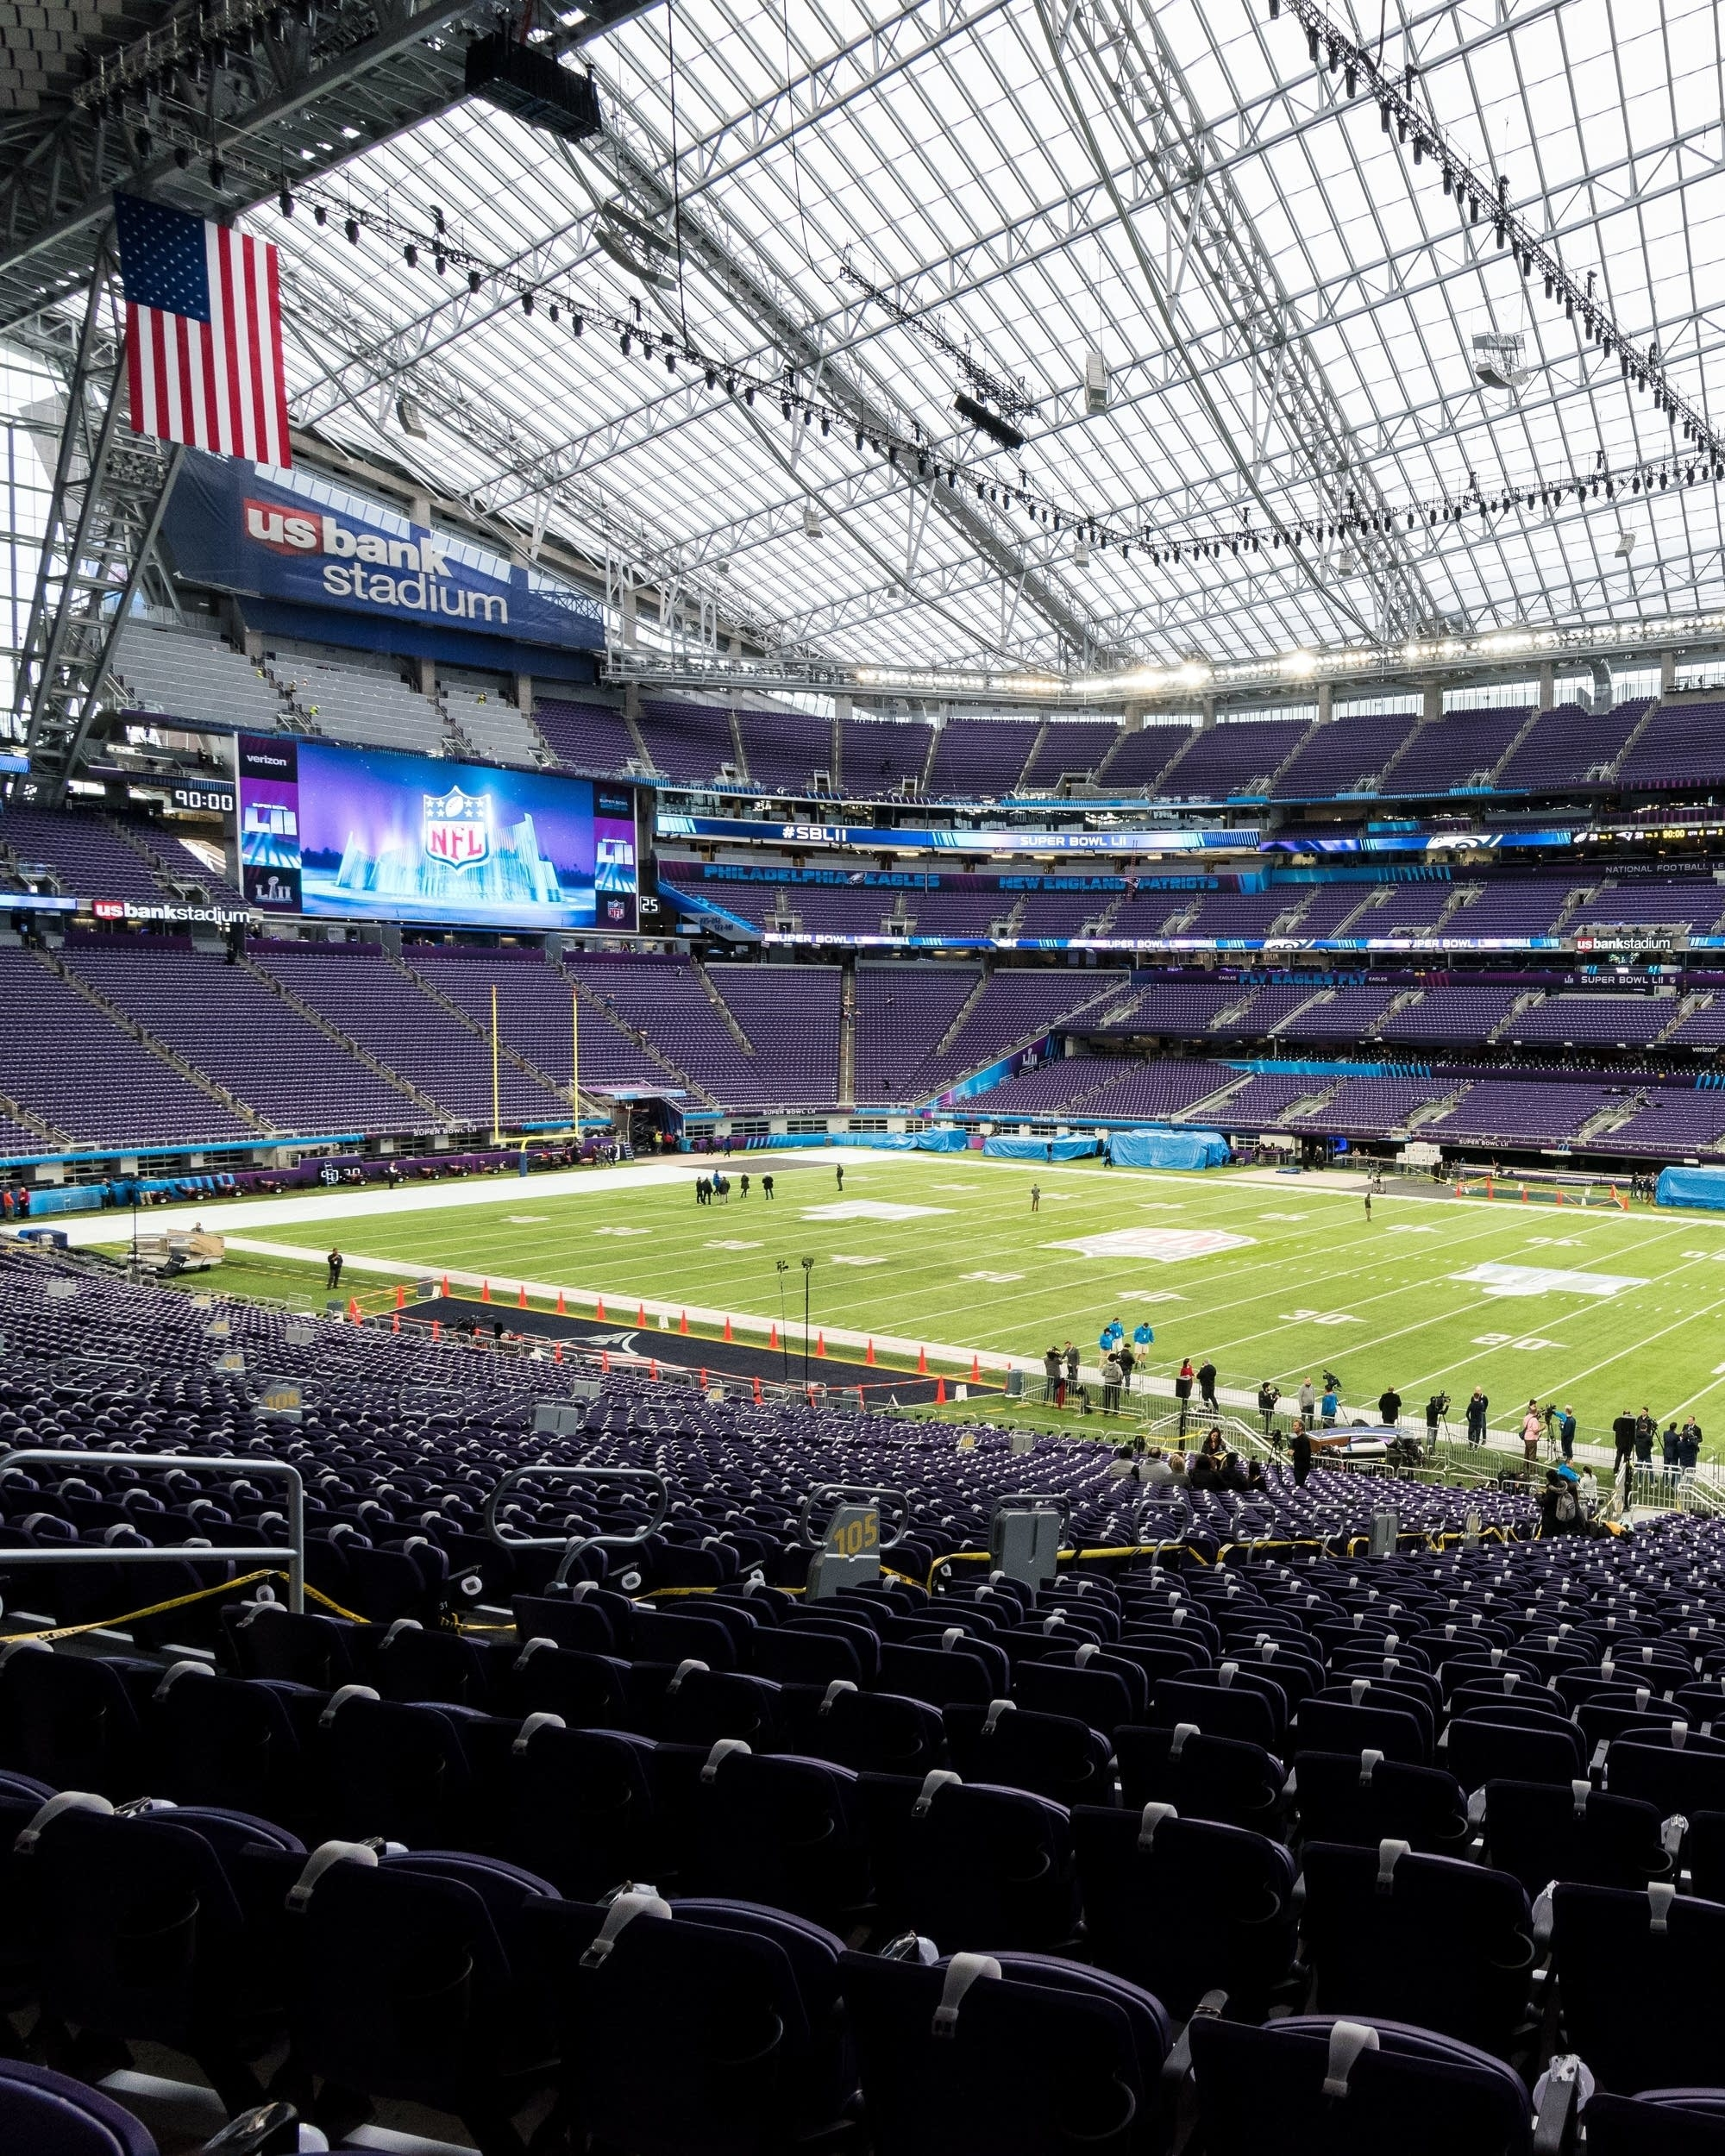 U.s. Bank Stadium Gets A Makeover Before The Super Bowl throughout Super Bowl Stadium Seating Capacity